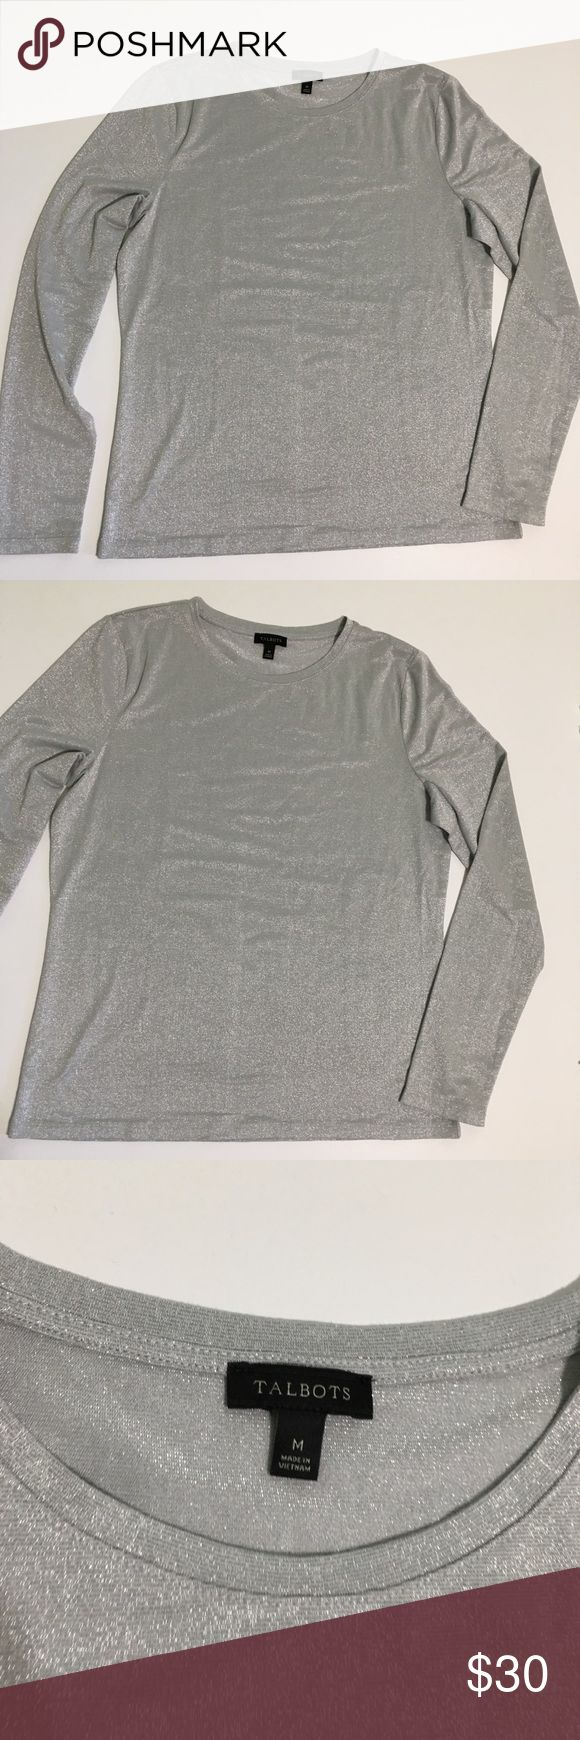 Talbots Silver Long Sleeve Top Pre Owned. No Flaws. Silver Detail material. Feel free to ask questions. Thank you for shopping by. Talbots Tops Blouses